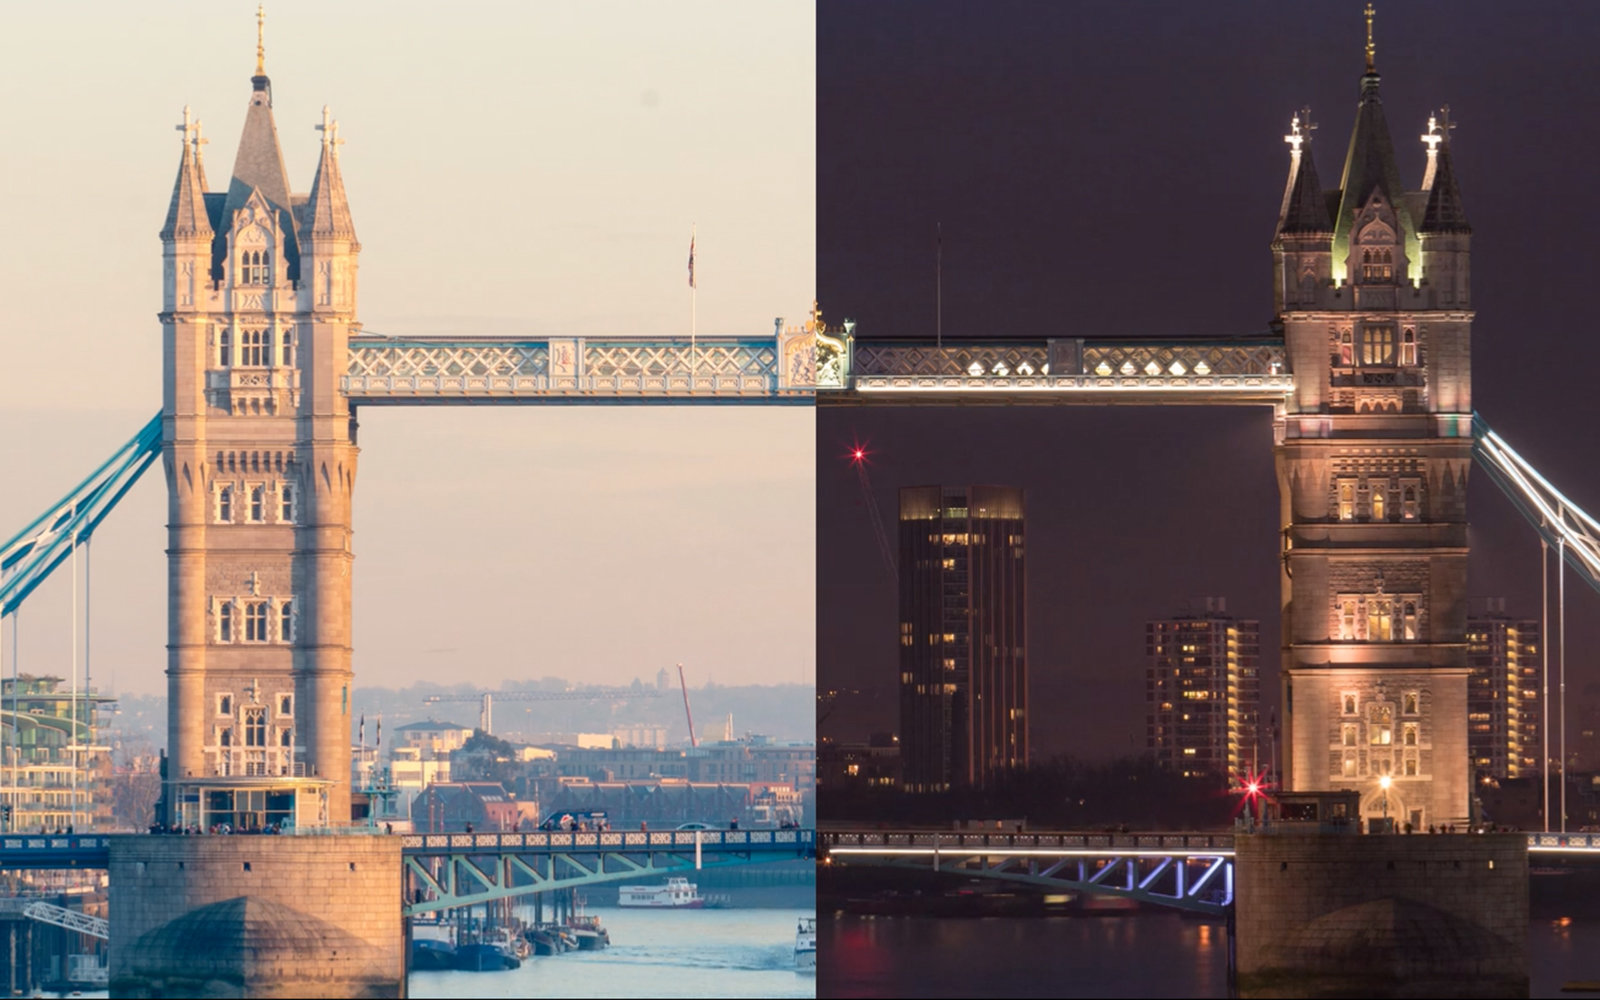 Take In the Best of London During the Day and at Night in Less Than Two Minutes